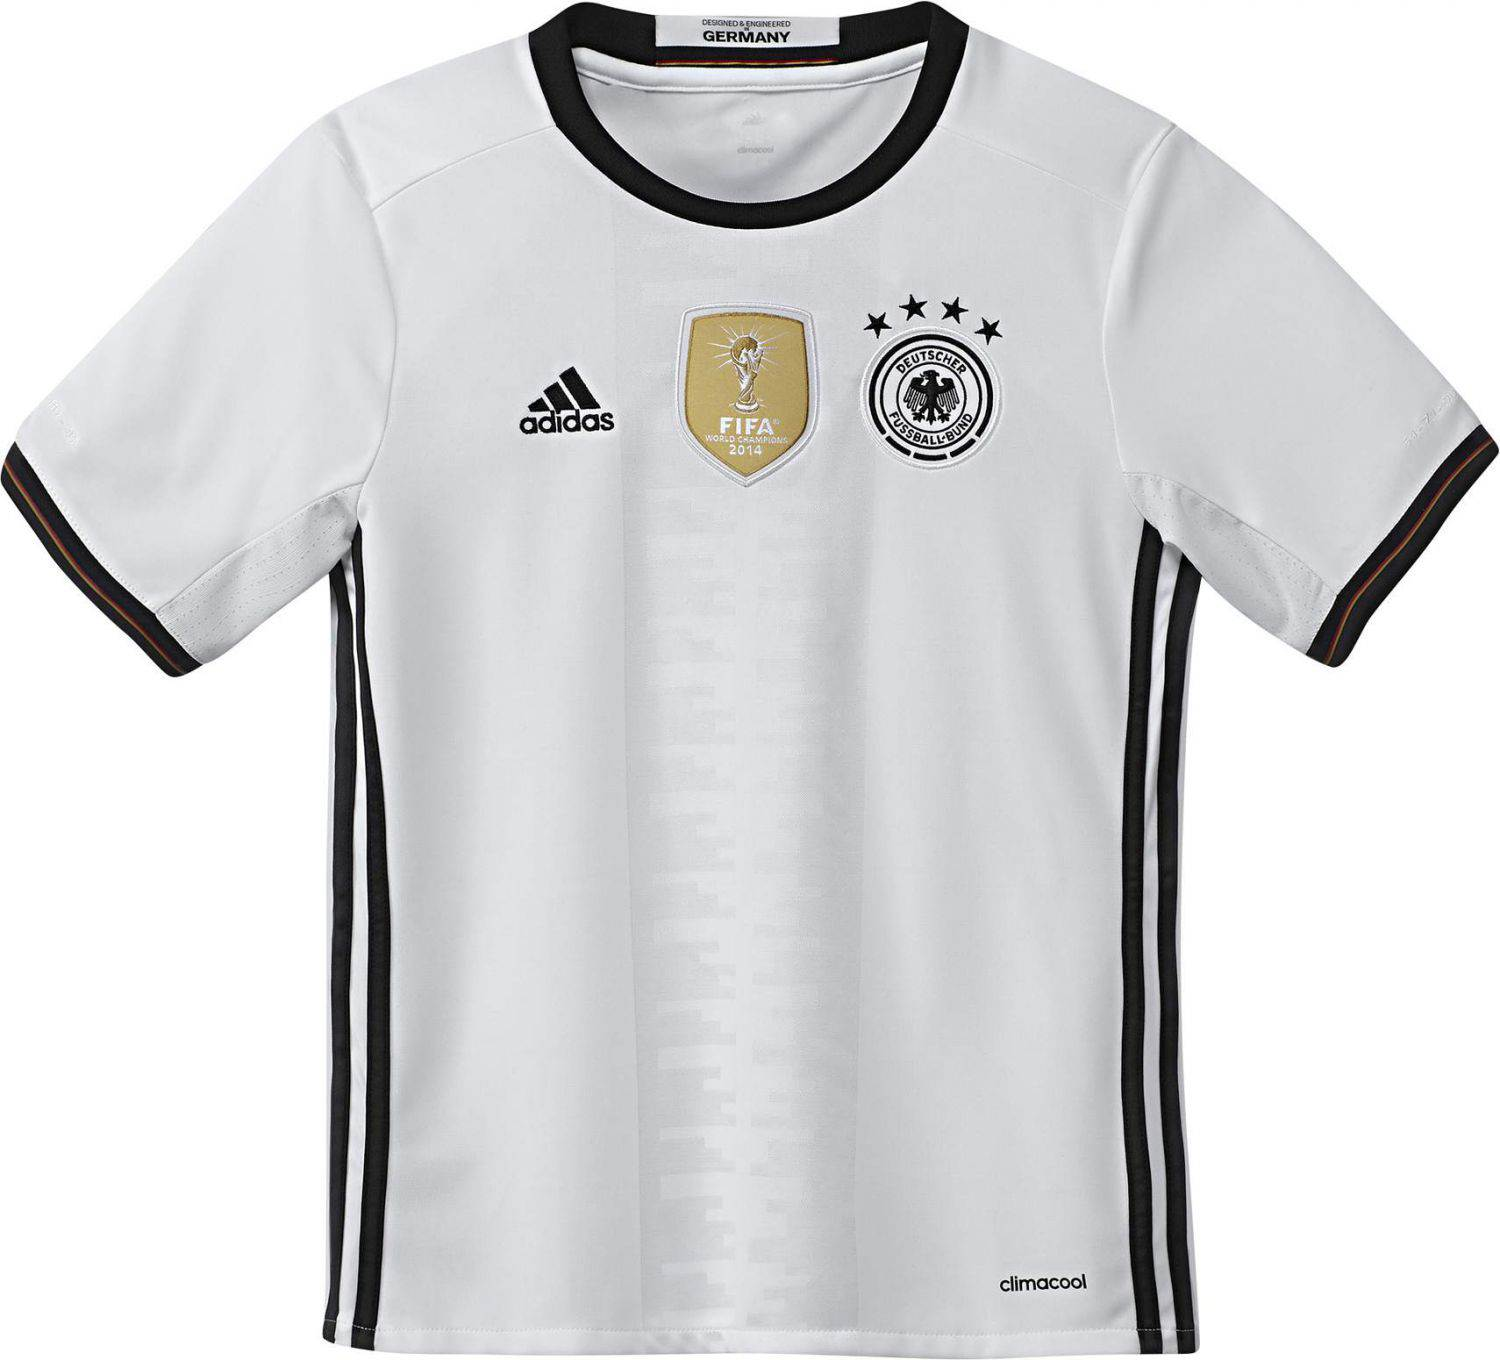 adidas DFB Home Jersey Youth Kindertrikot (Größe 128, white black)